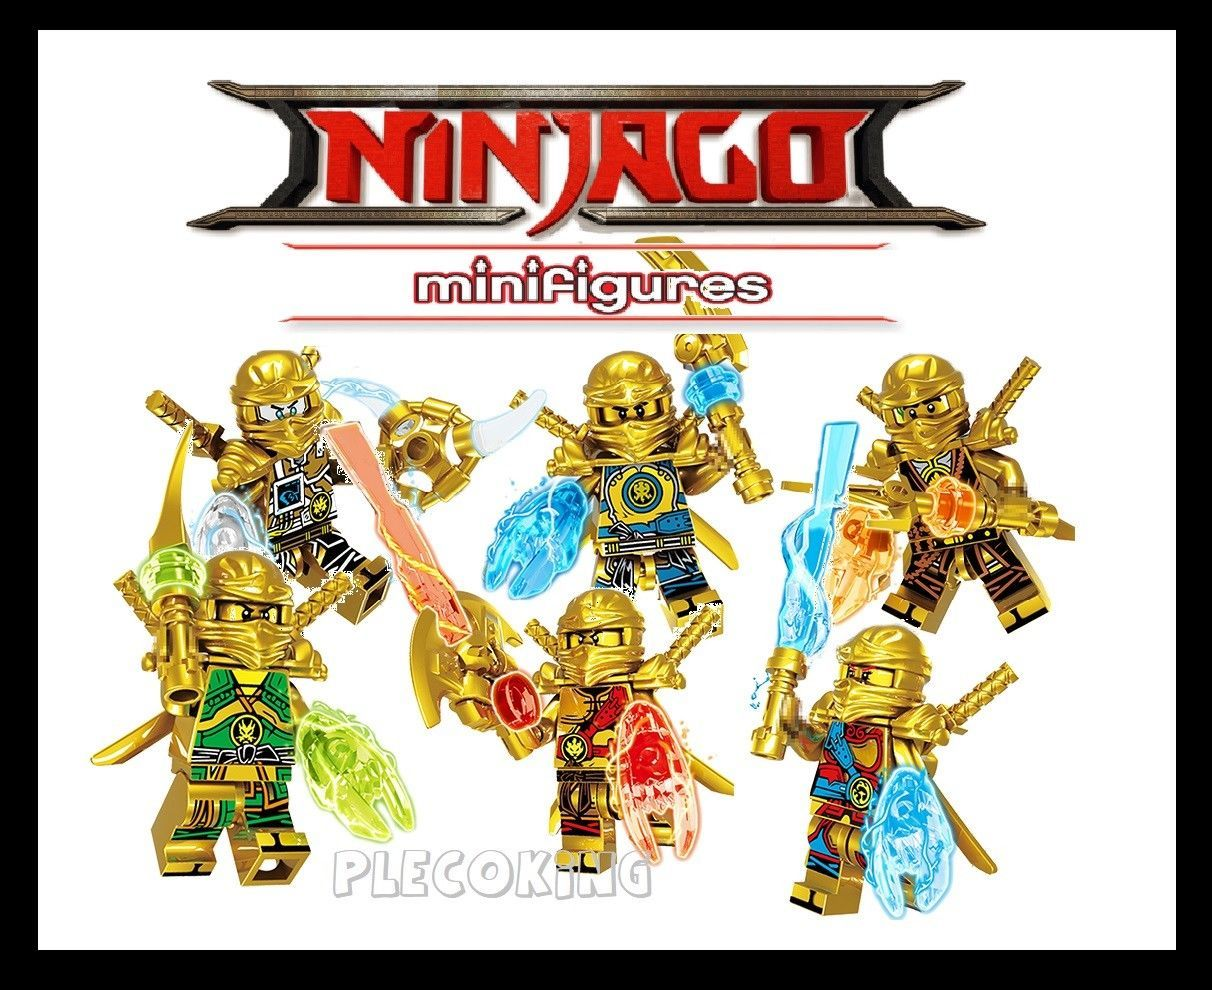 Ninjago Legendary Gold Lloyd Hands Of Time Mini Figure Fits Lego L3 Ebay Lego Custom Minifigures Ninjago Lego